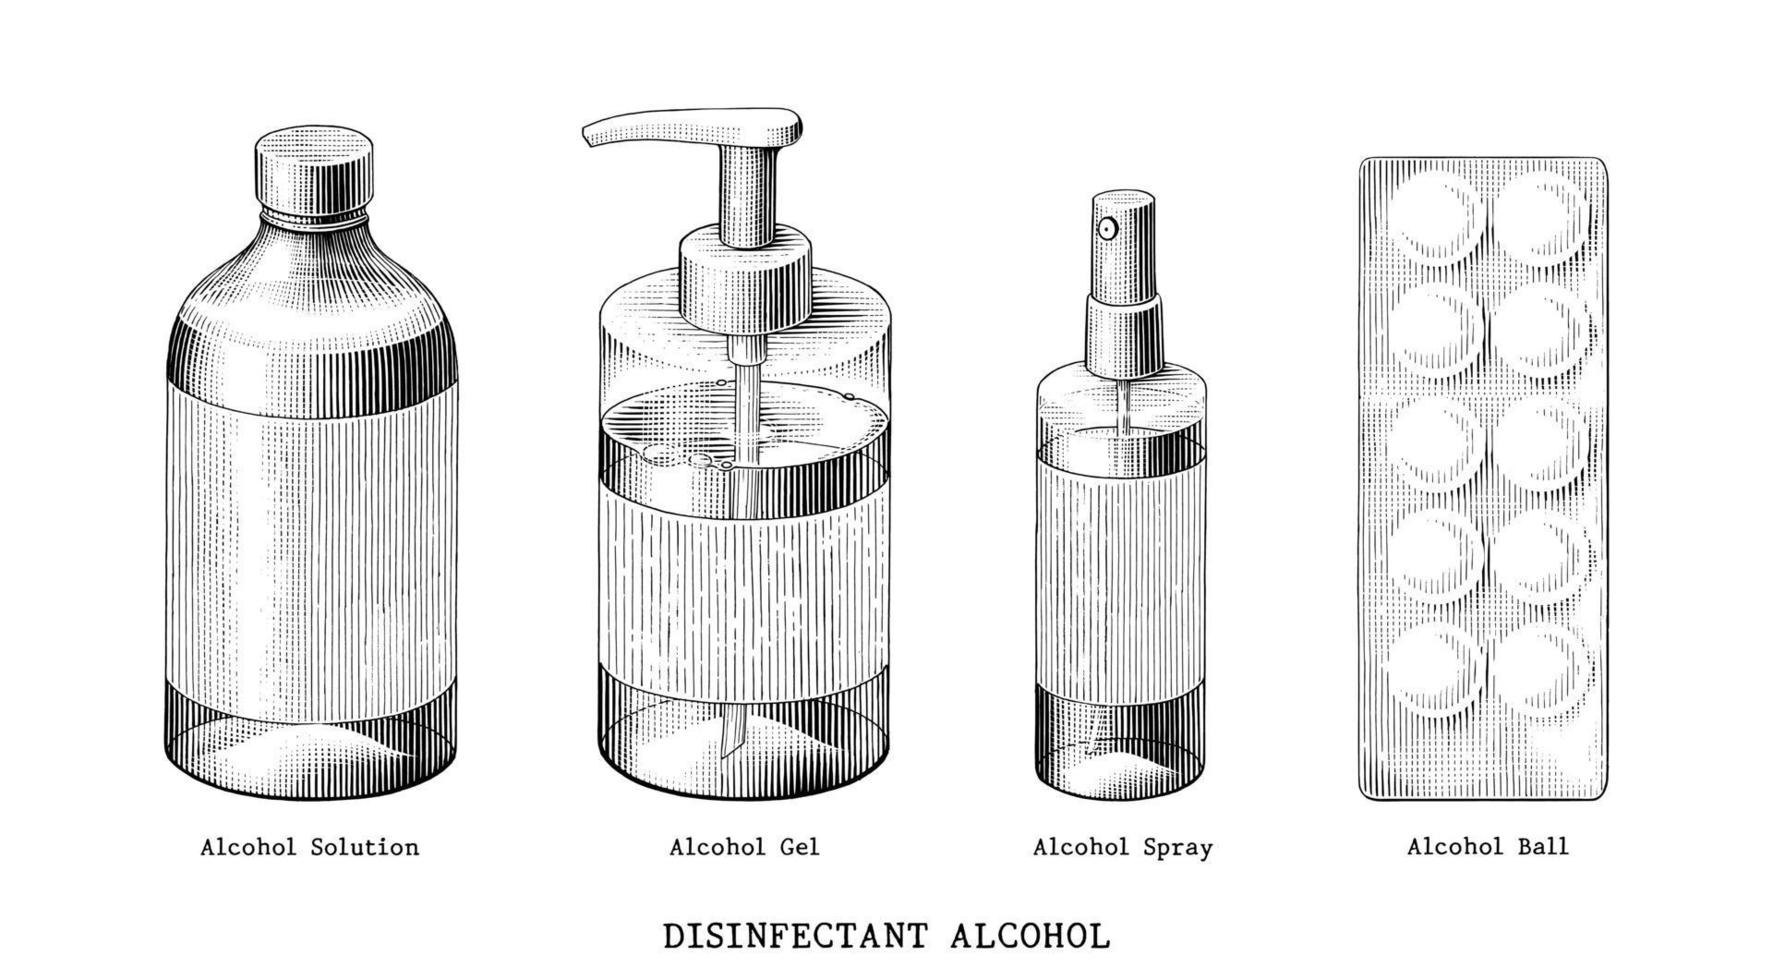 Disinfectant alcohol set hand draw vintage style black and white art isolated on white background vector